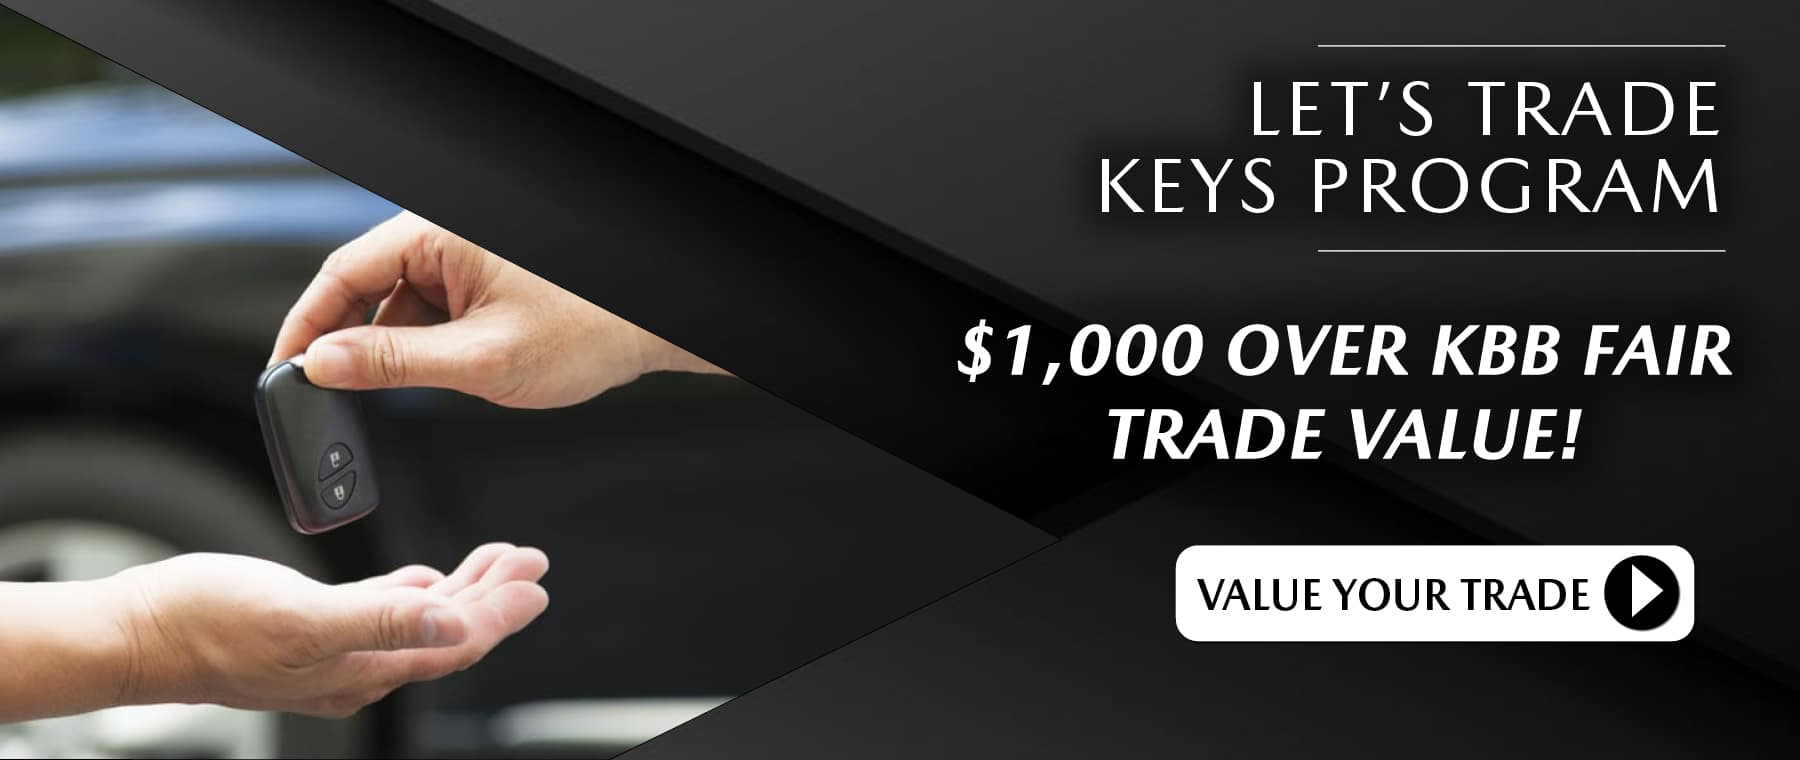 lets trade keys – mz hurst